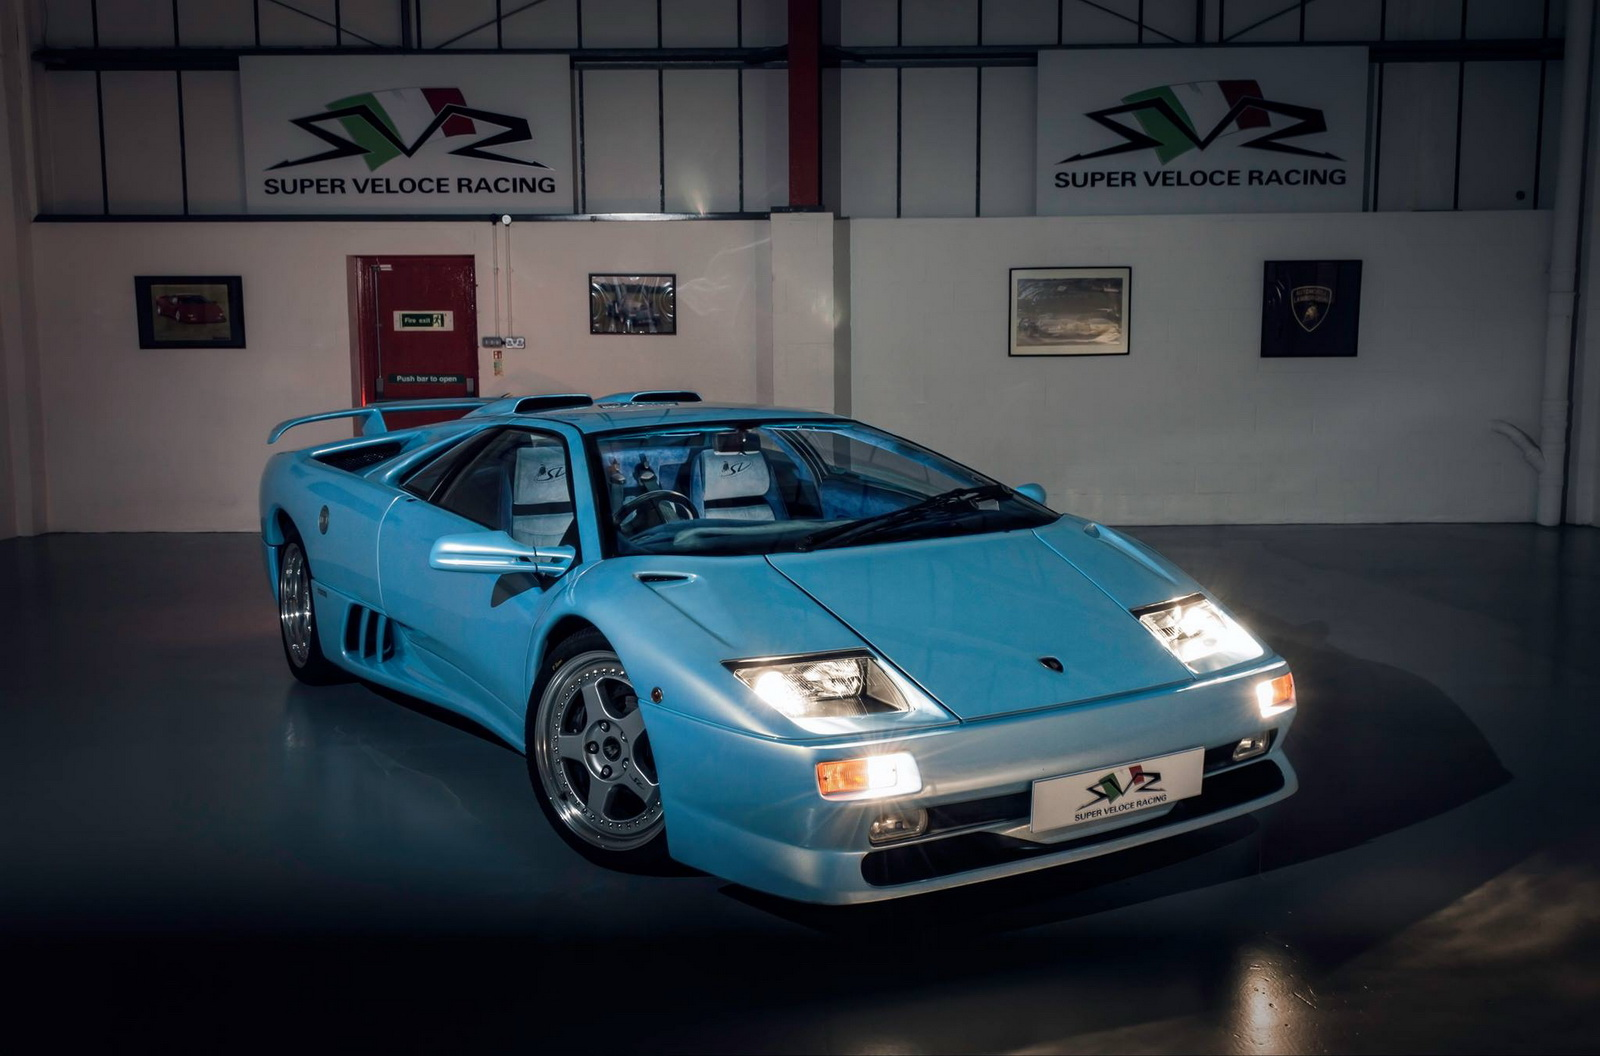 Auction Cars For Sale >> Ice-Blue Lamborghini Diablo SV Is The Hairy-Chested Supercar We'd Love To Own